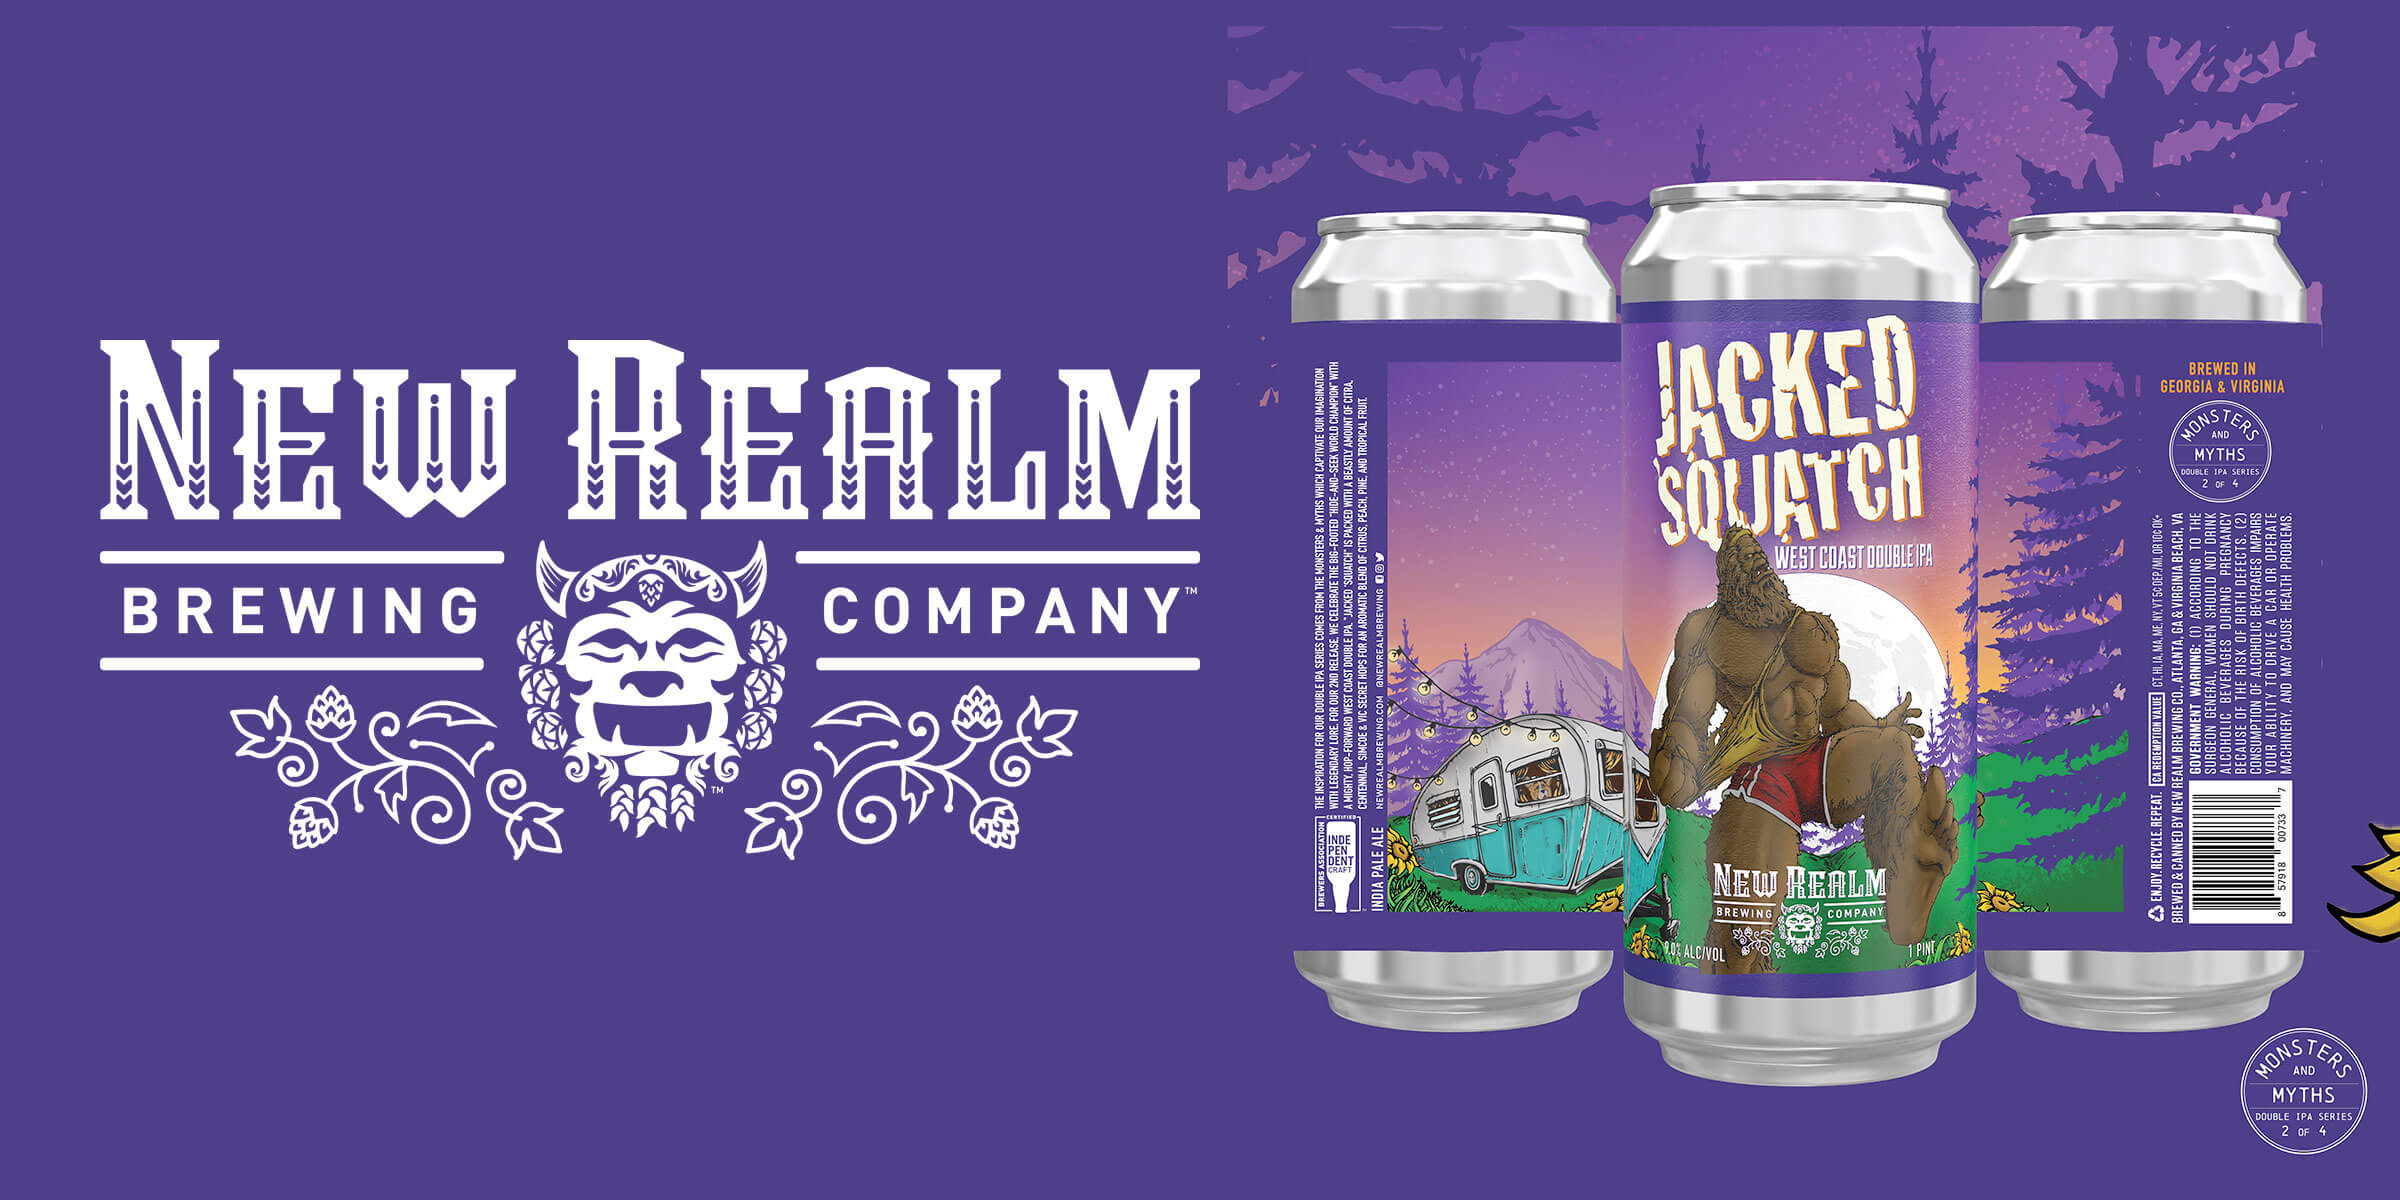 New Realm Brewing Company introduces their second release in the Monsters & Myths Double IPA Series, Jacked 'Squatch, available this June.